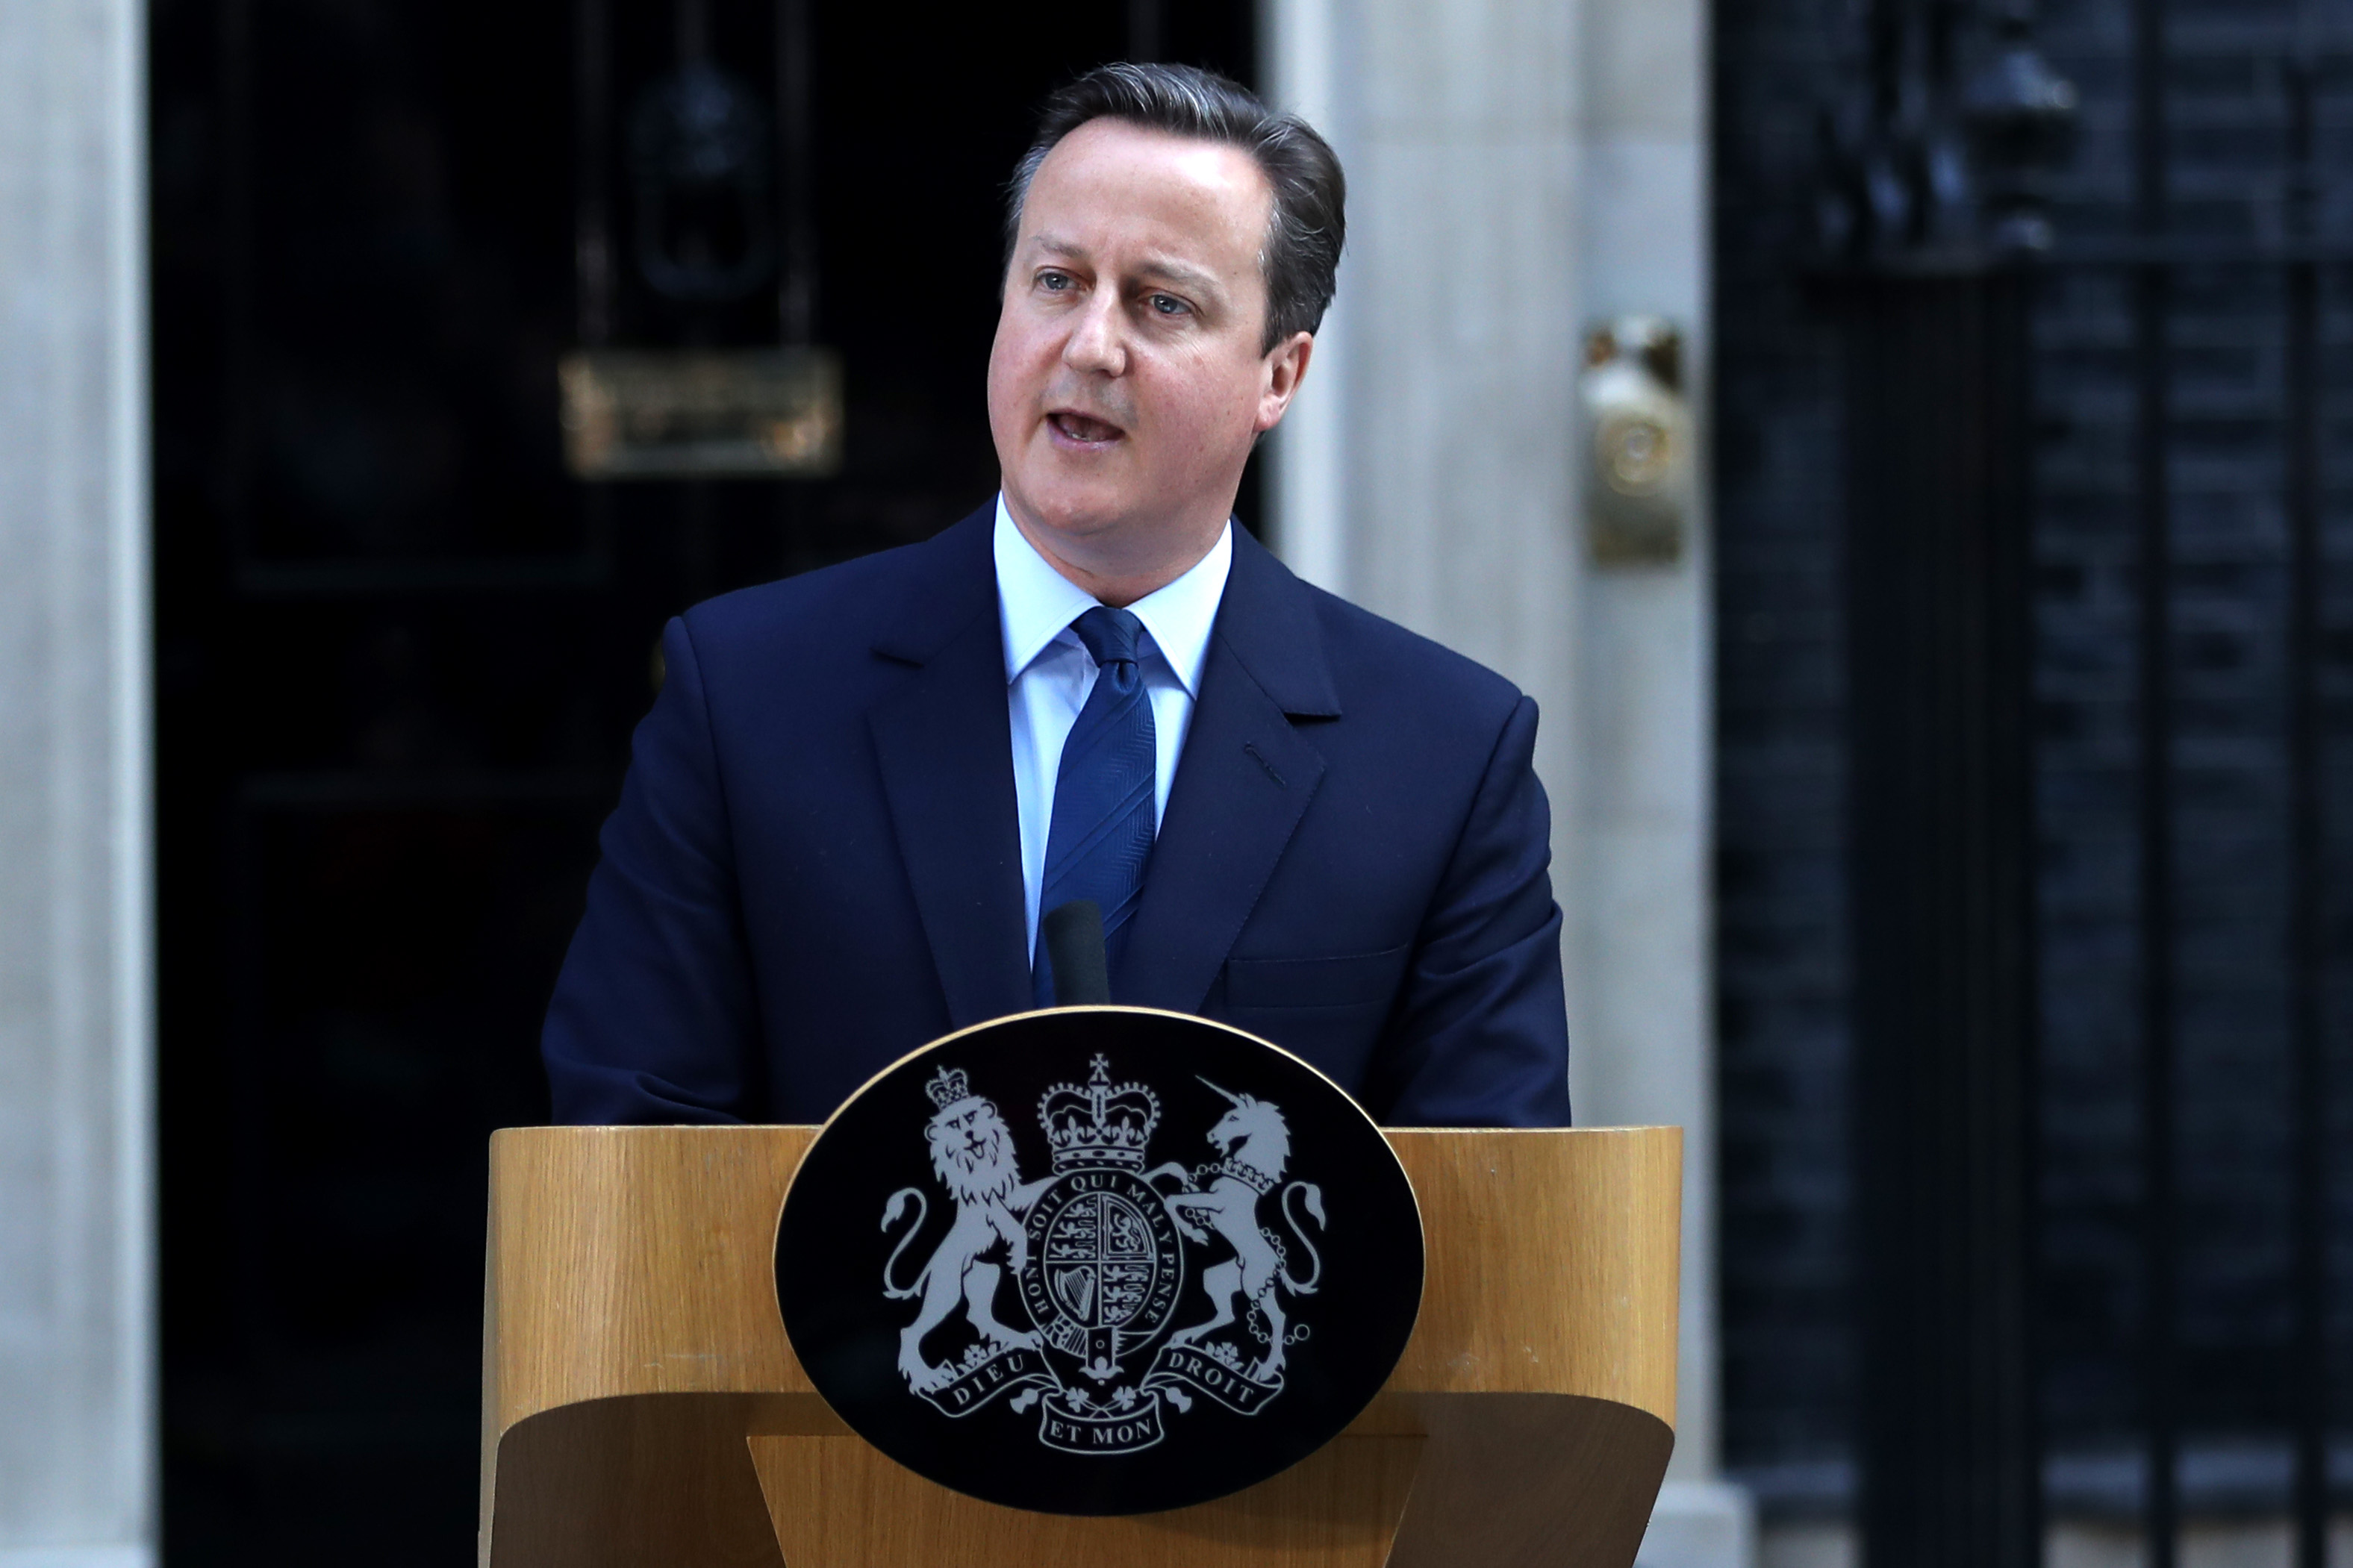 David Cameron Resigns After EU Referendum Result